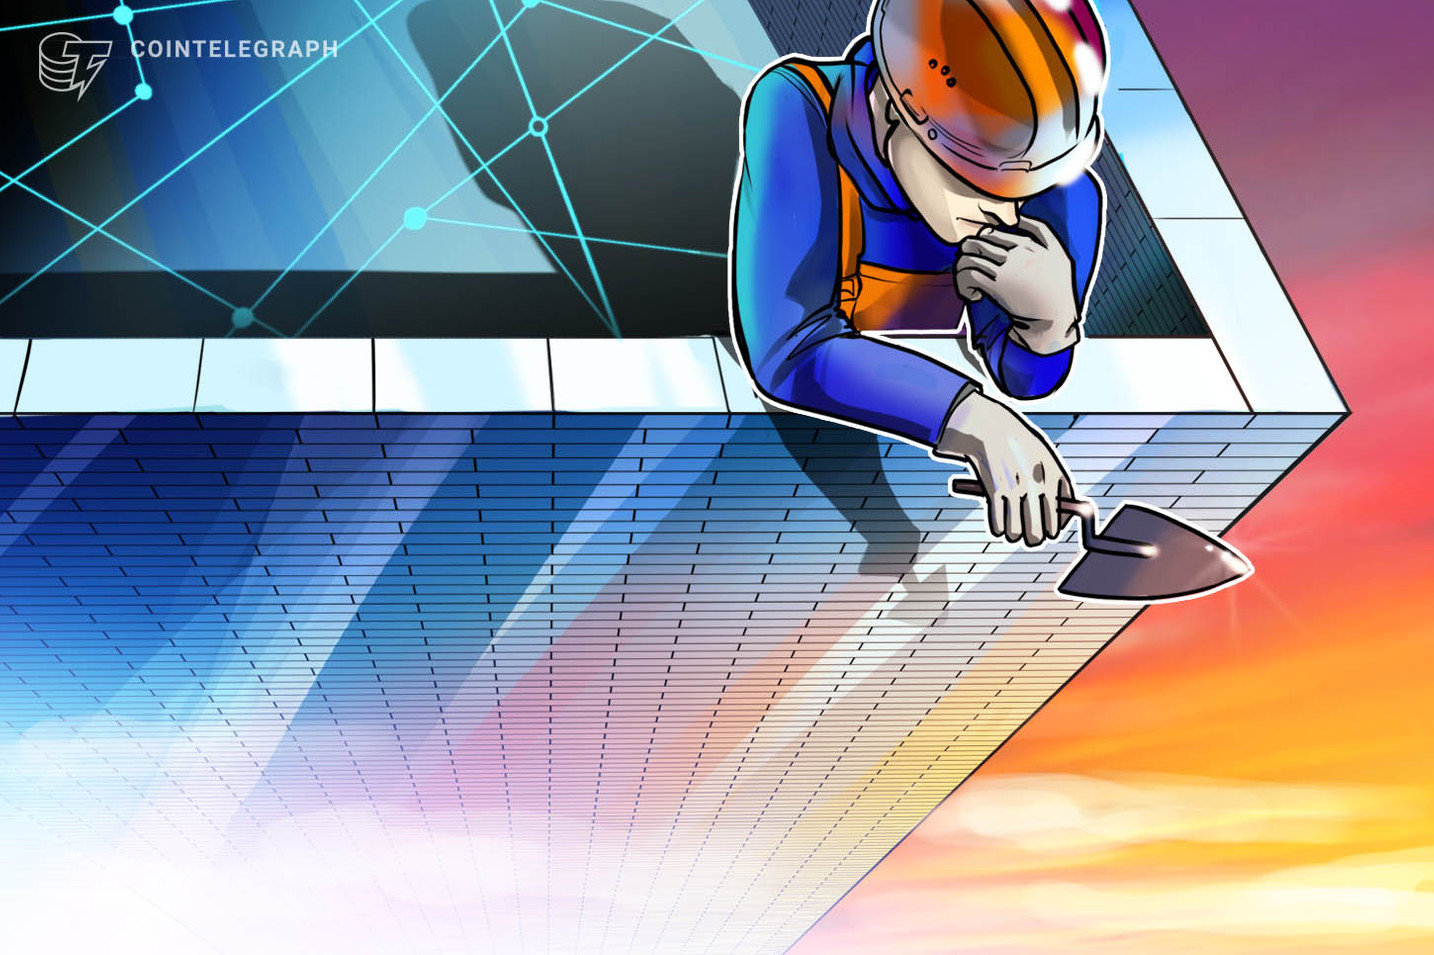 Mining Pool of China's Oldest Bitcoin Exchange BTCC to See 'Indefinite' Closure